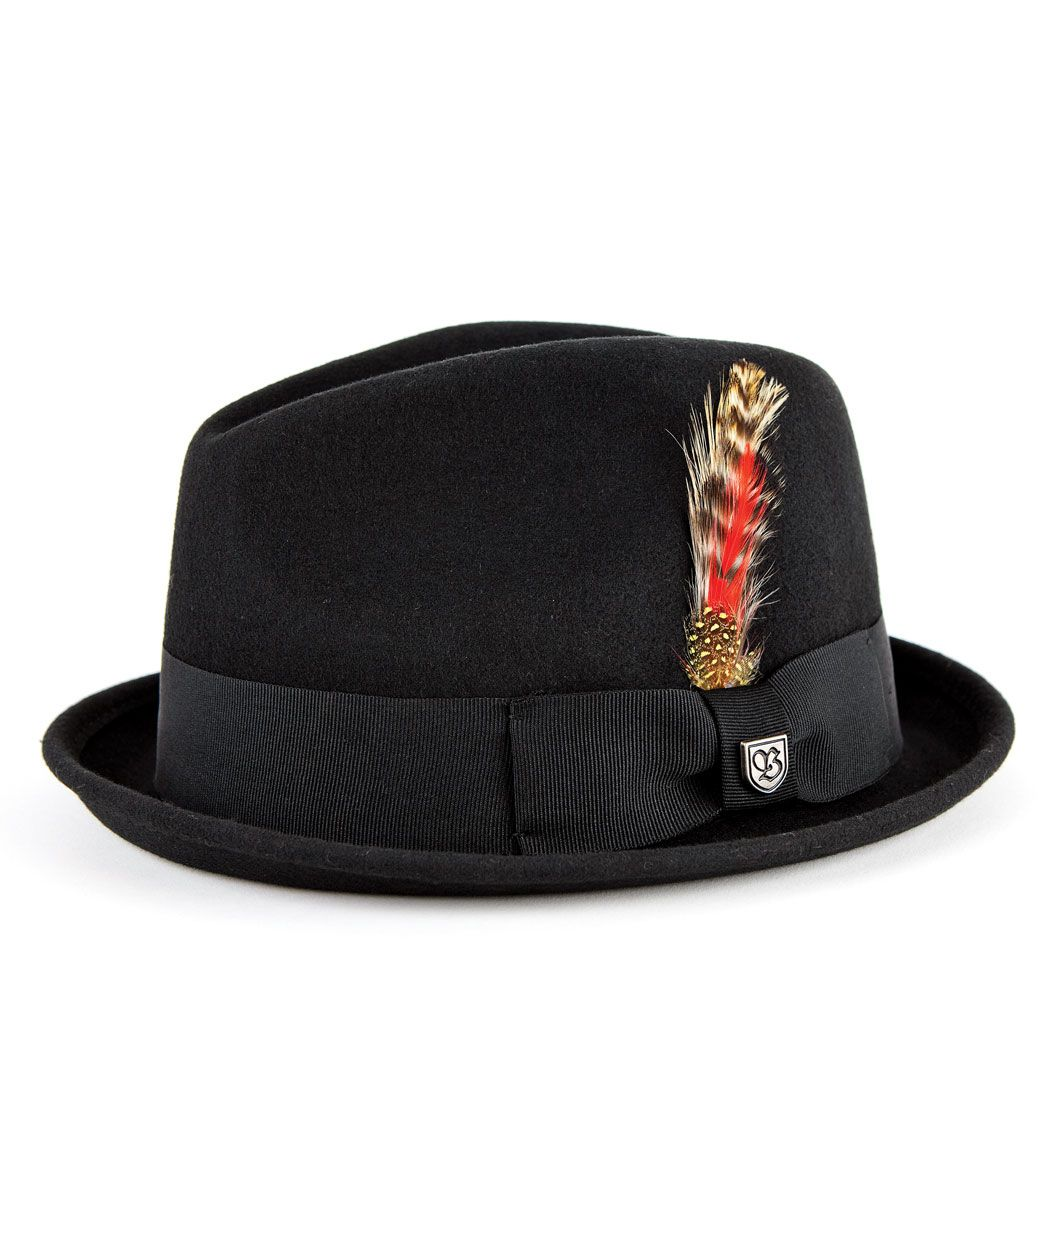 909db87d22f02  80 The Gain Fedora Hat